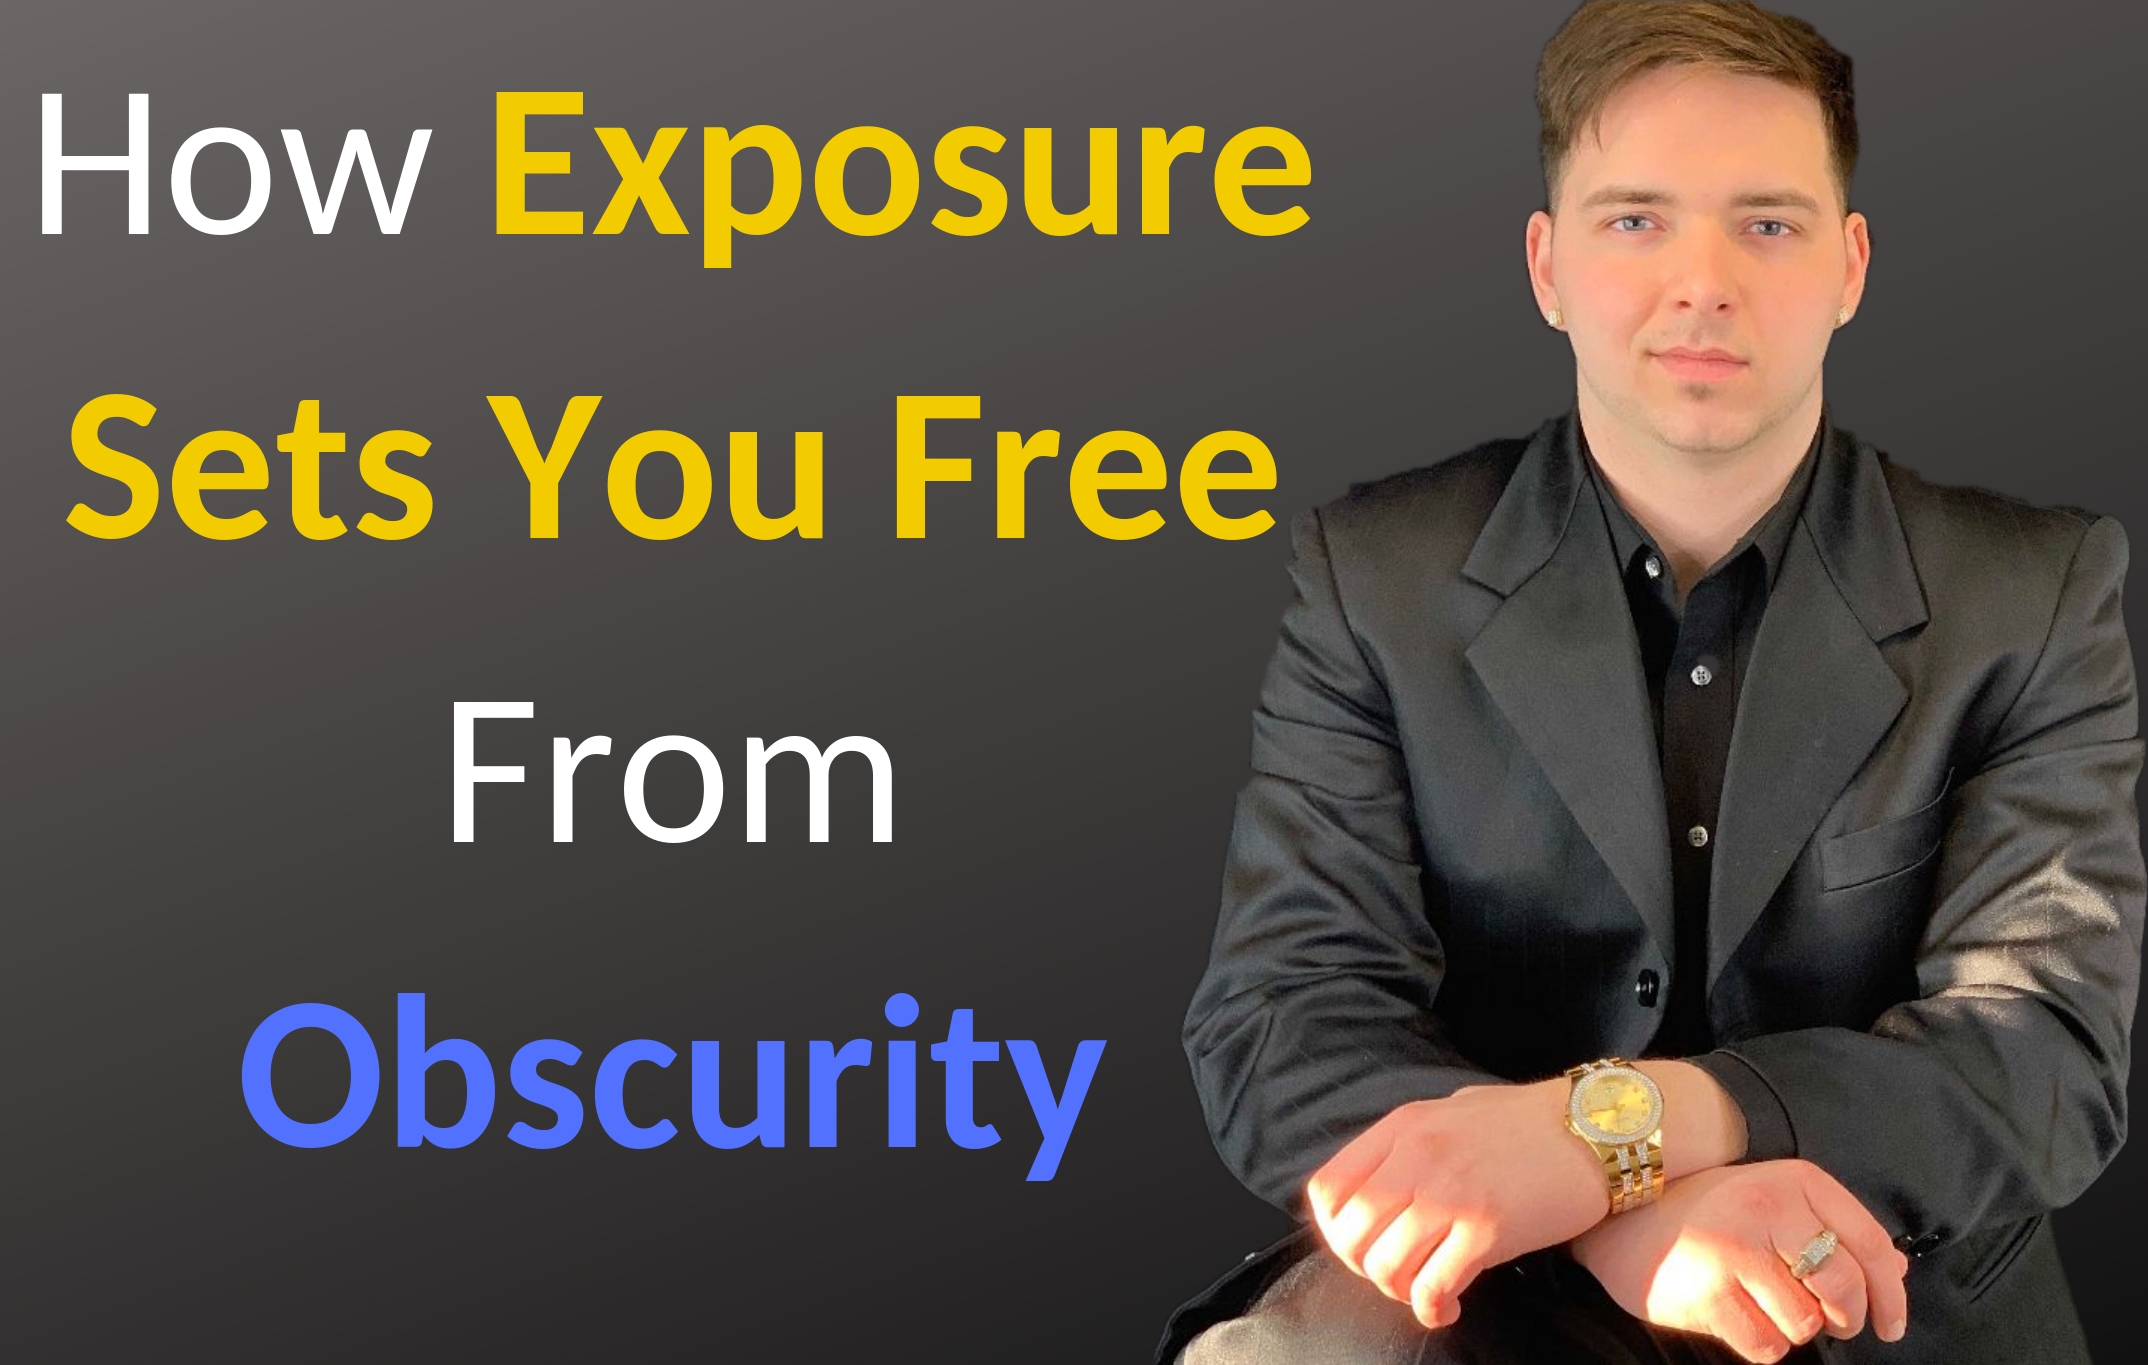 Why & How To Get Out Of Obscurity With Massive Exposure